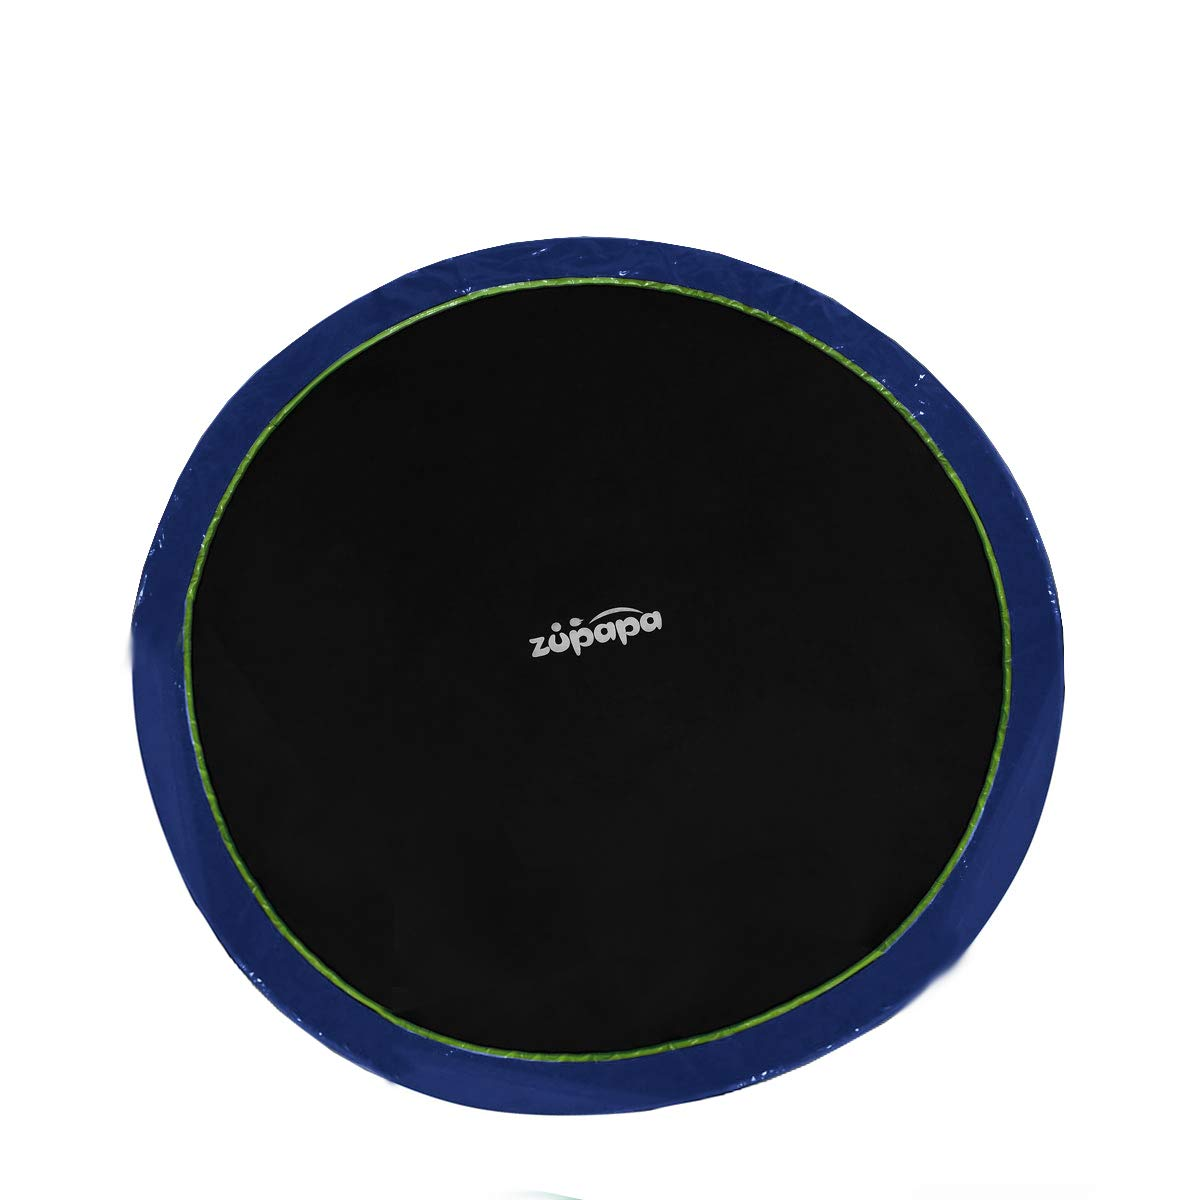 Zupapa 2019 Trampoline 15FT 14FT 12FT 10FT Newest No-Gap Jumping Mat Replacement (10FT) by Zupapa (Image #2)